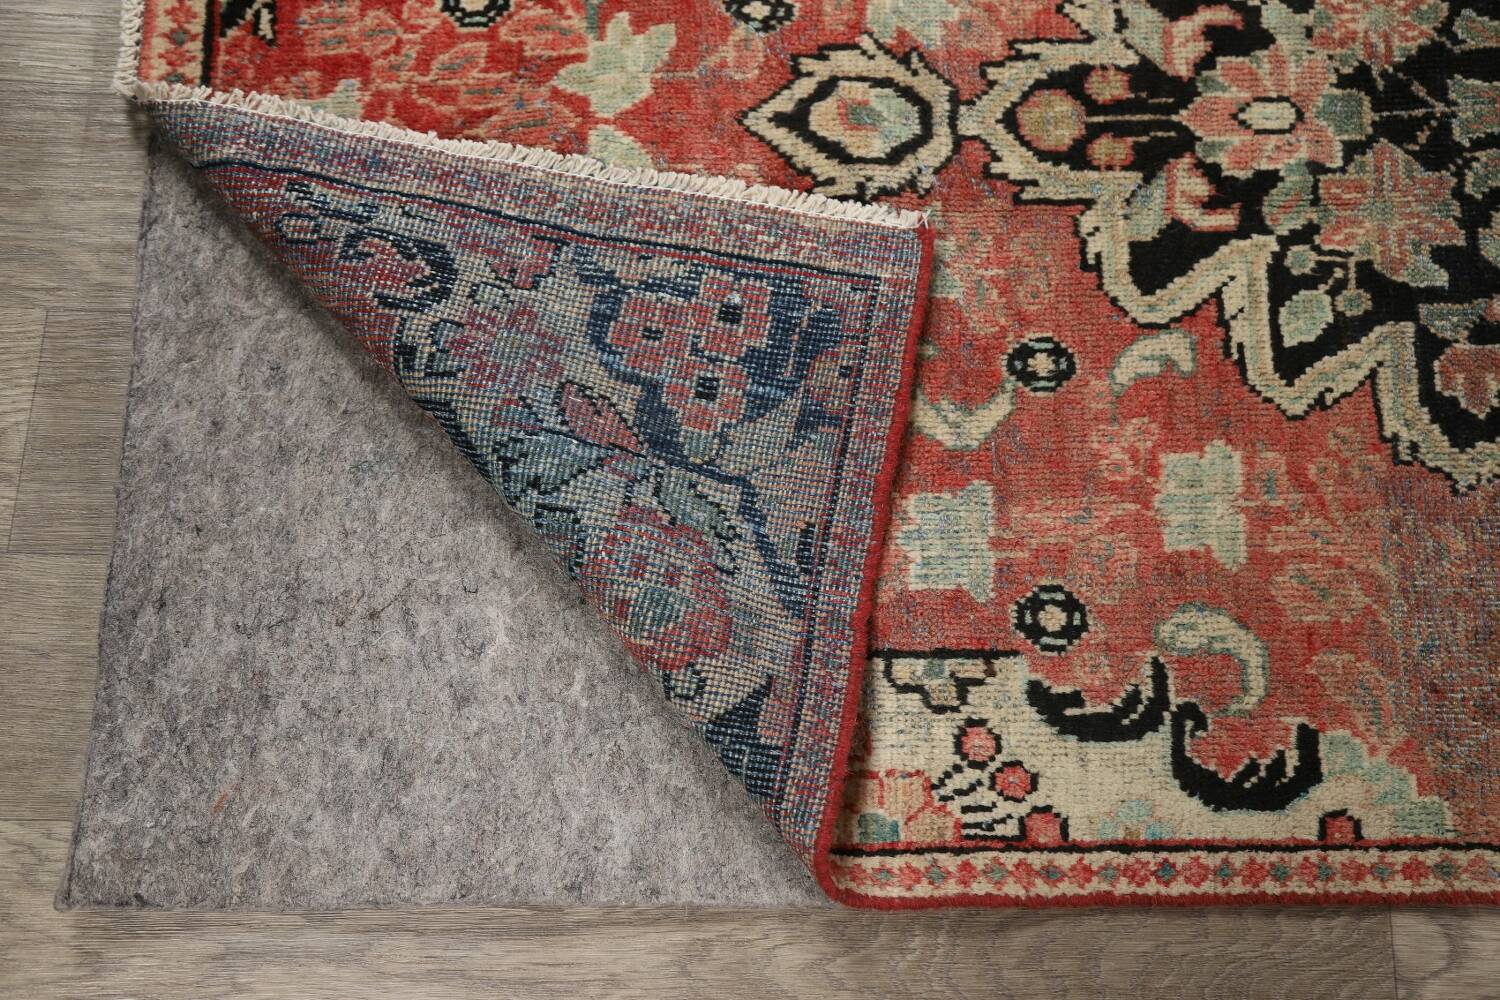 Antique Floral Mahal Persian Area Rug 3x6 image 8